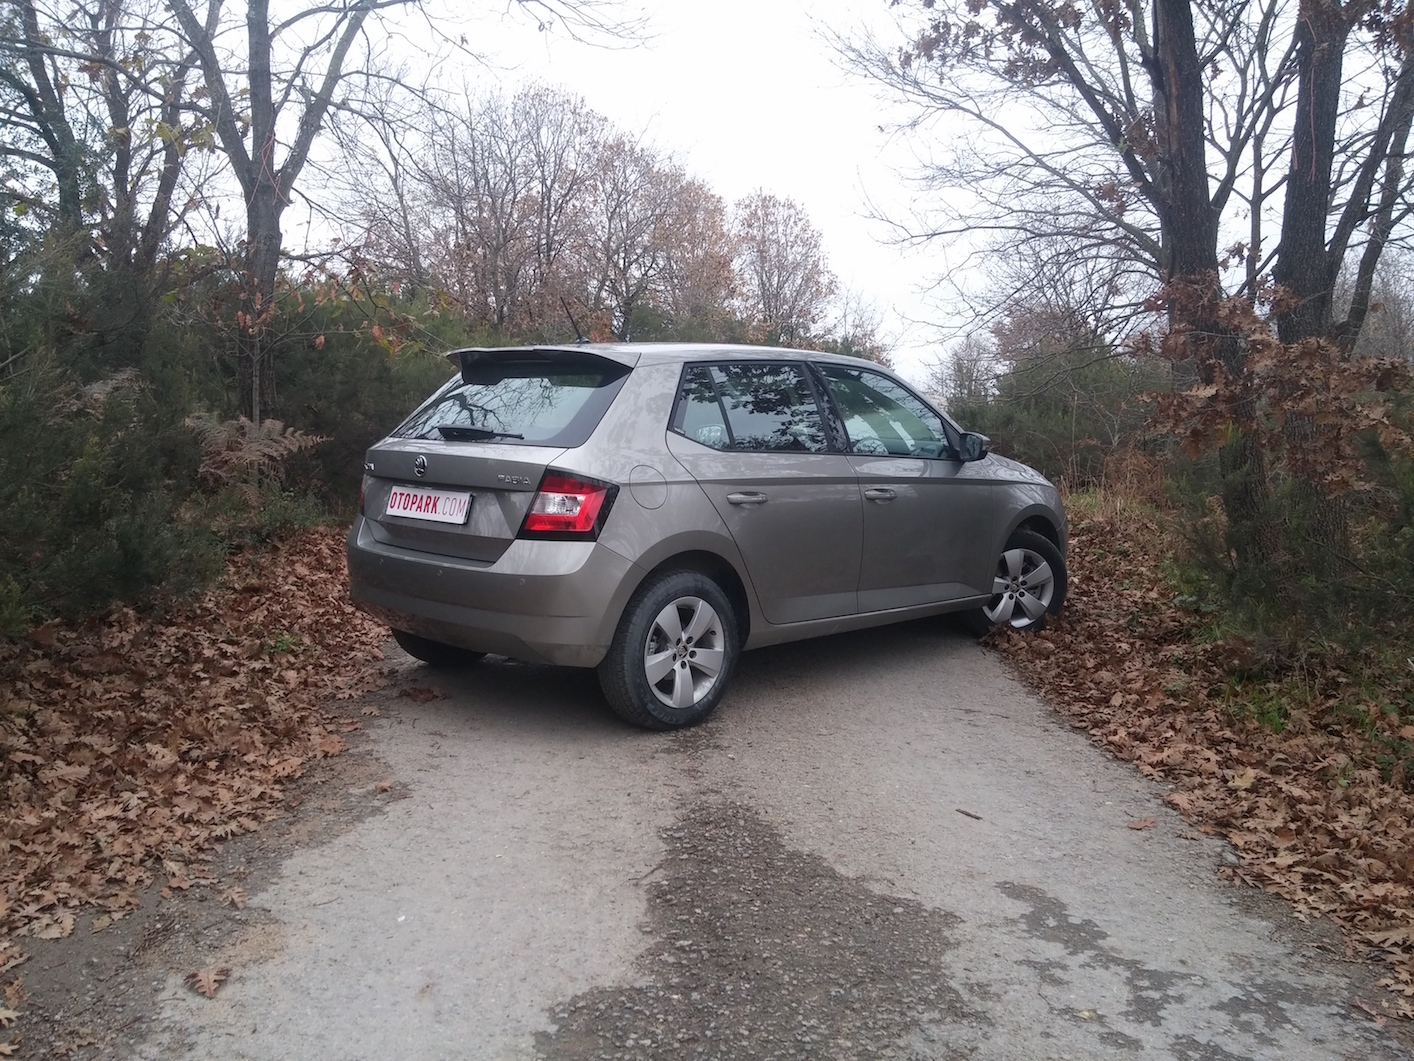 Photo of Külyutmaz: Skoda Fabia 1.2 TSI Style